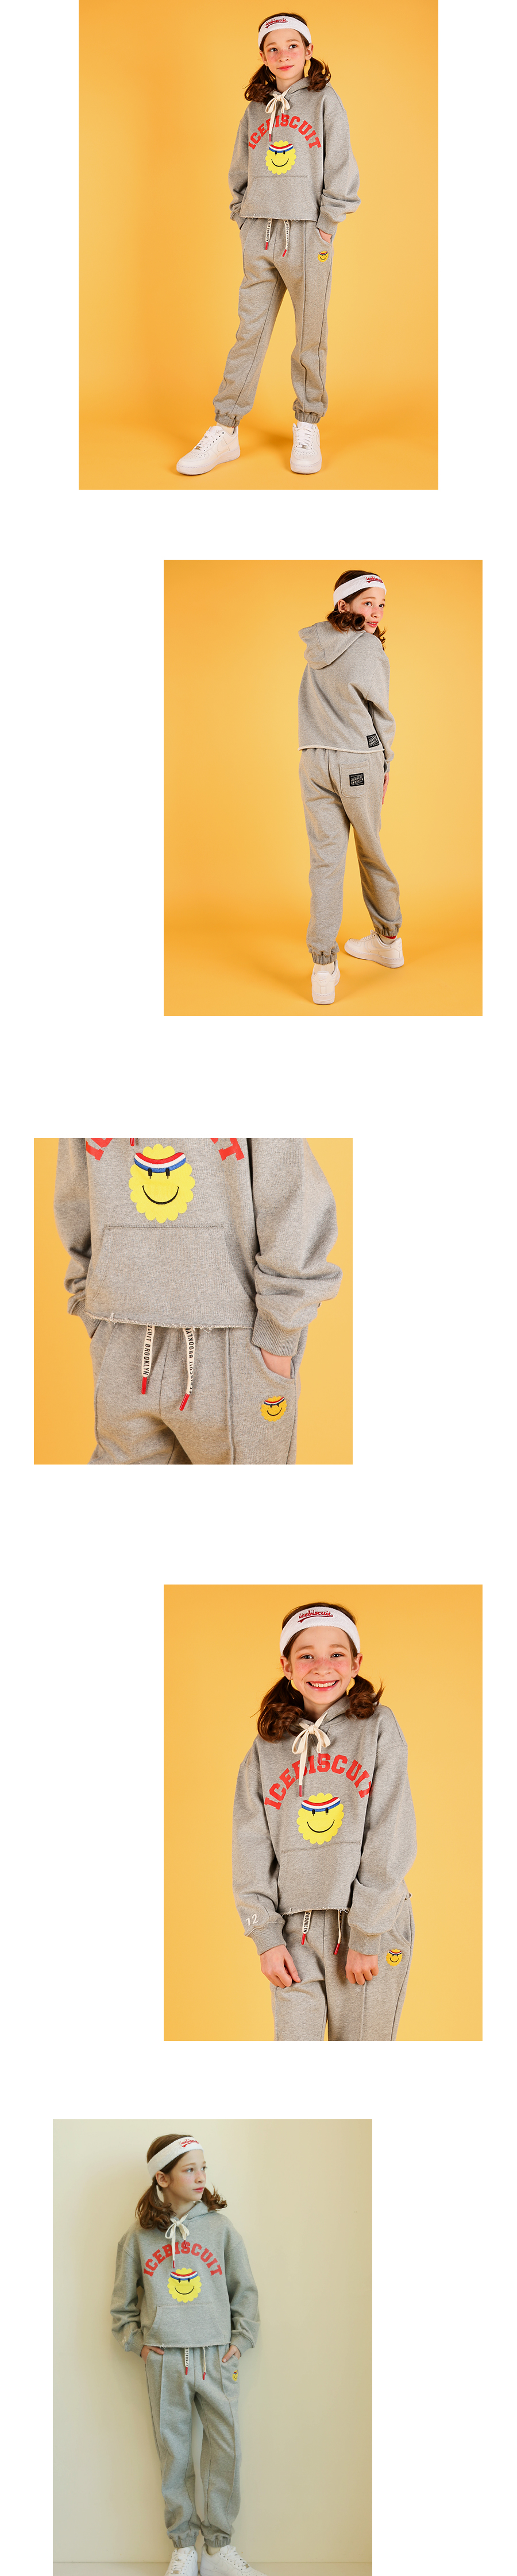 Icebiscuit player sweatpants 상세 이미지